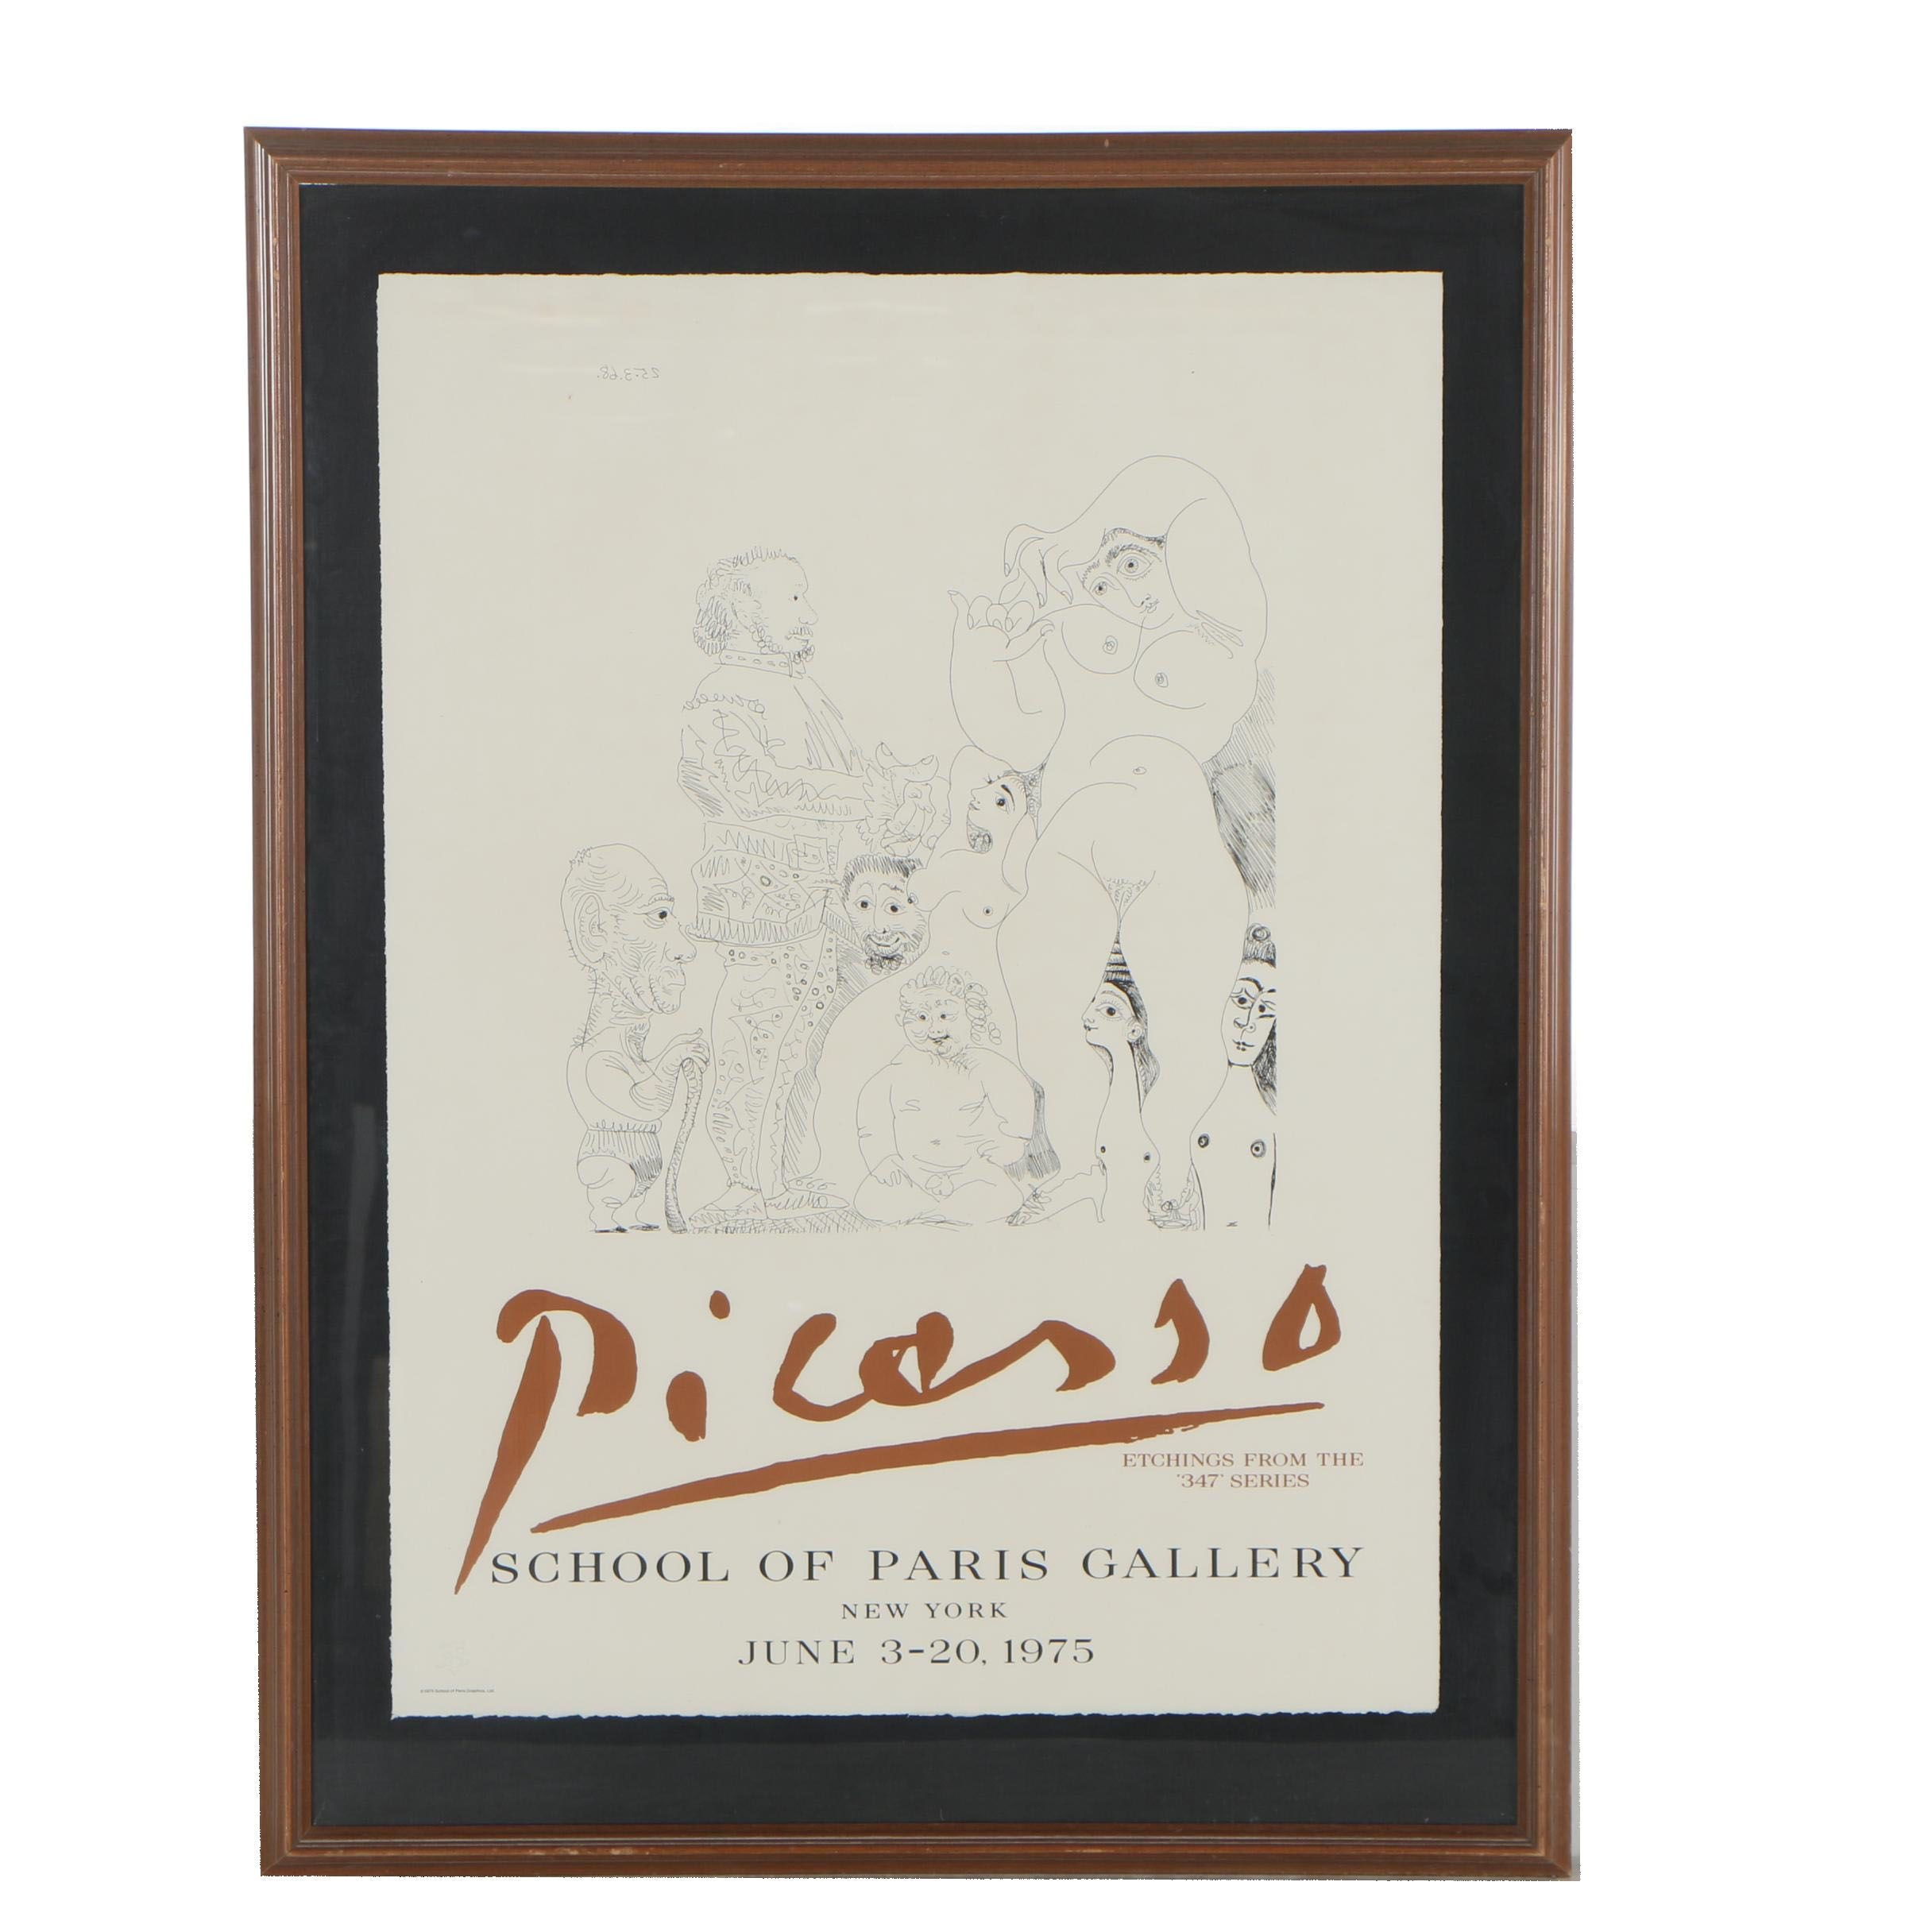 1975 School of Paris Gallery Lithograph Poster after Pablo Picasso